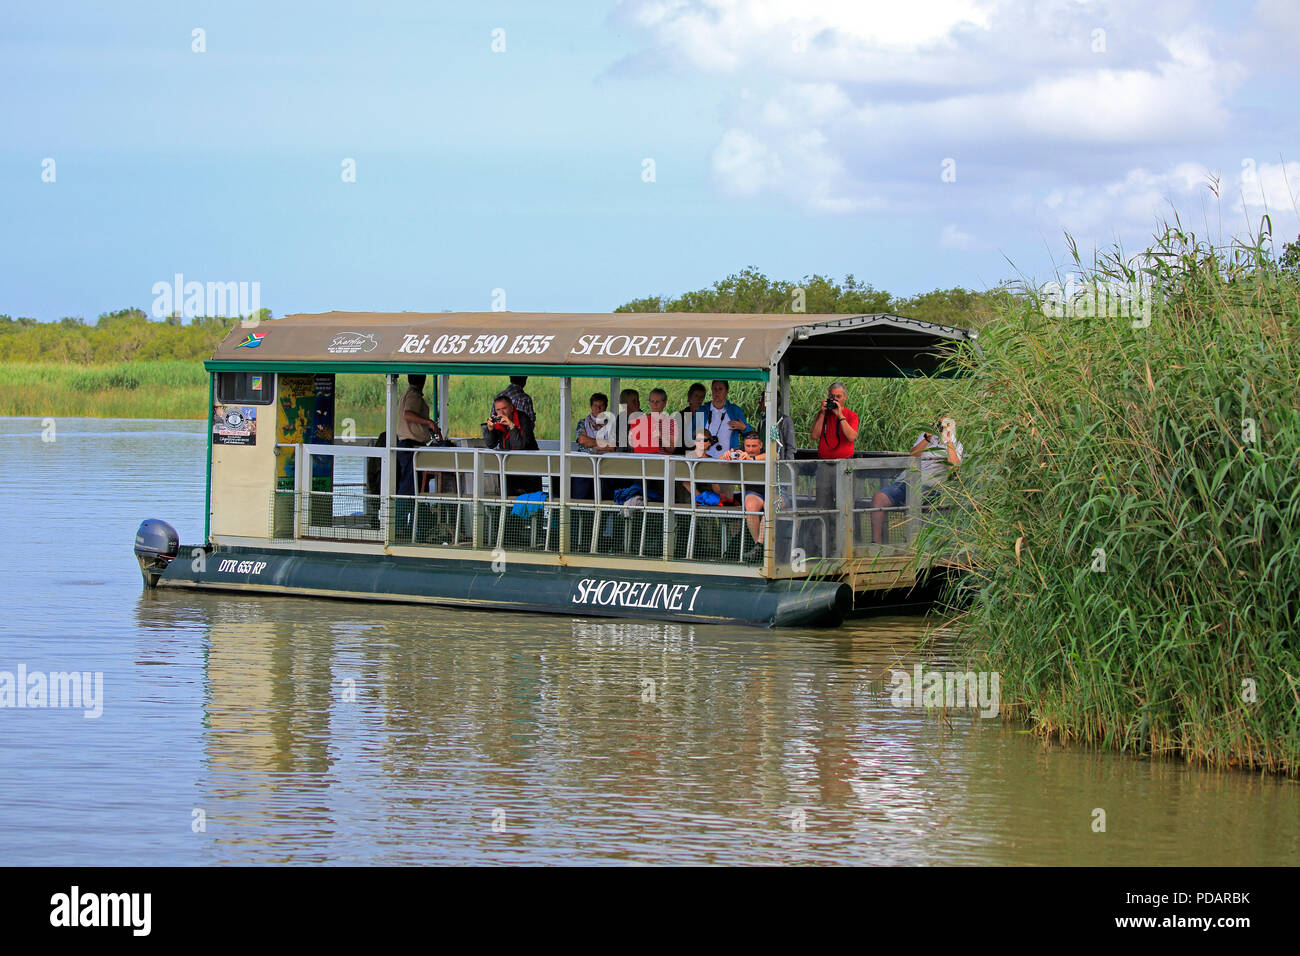 Excursion boat, tourists on boat safari, St Lucia, St Lucia Estuary, Isimangaliso Wetland Park, Kwazulu Natal, South Africa, Africa Stock Photo